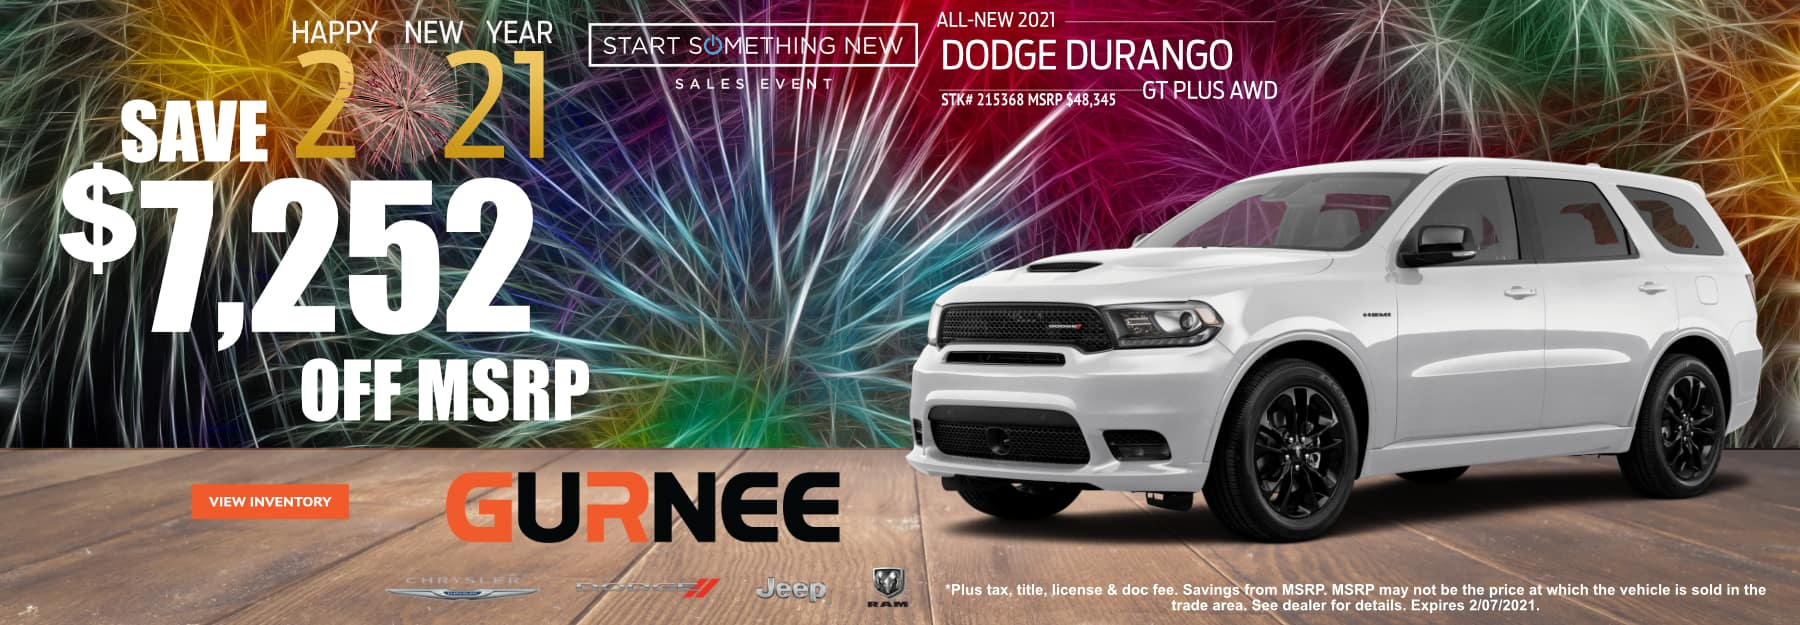 January-2021 DODGE_DURANGO_GURNEE